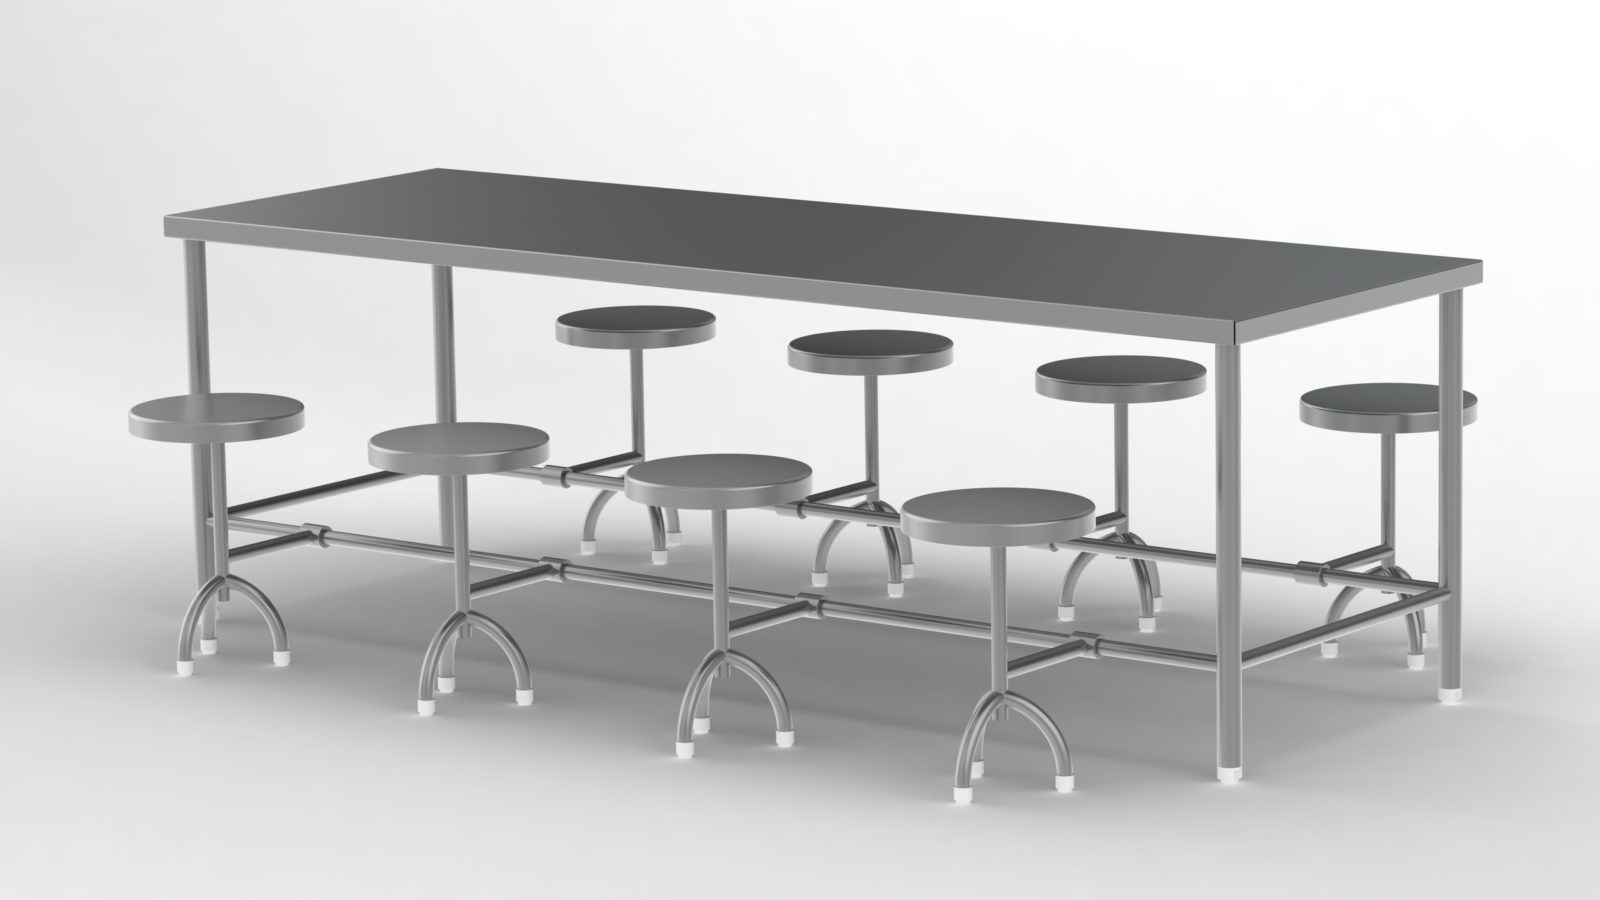 8 seater Folding ss Dining table for canteen